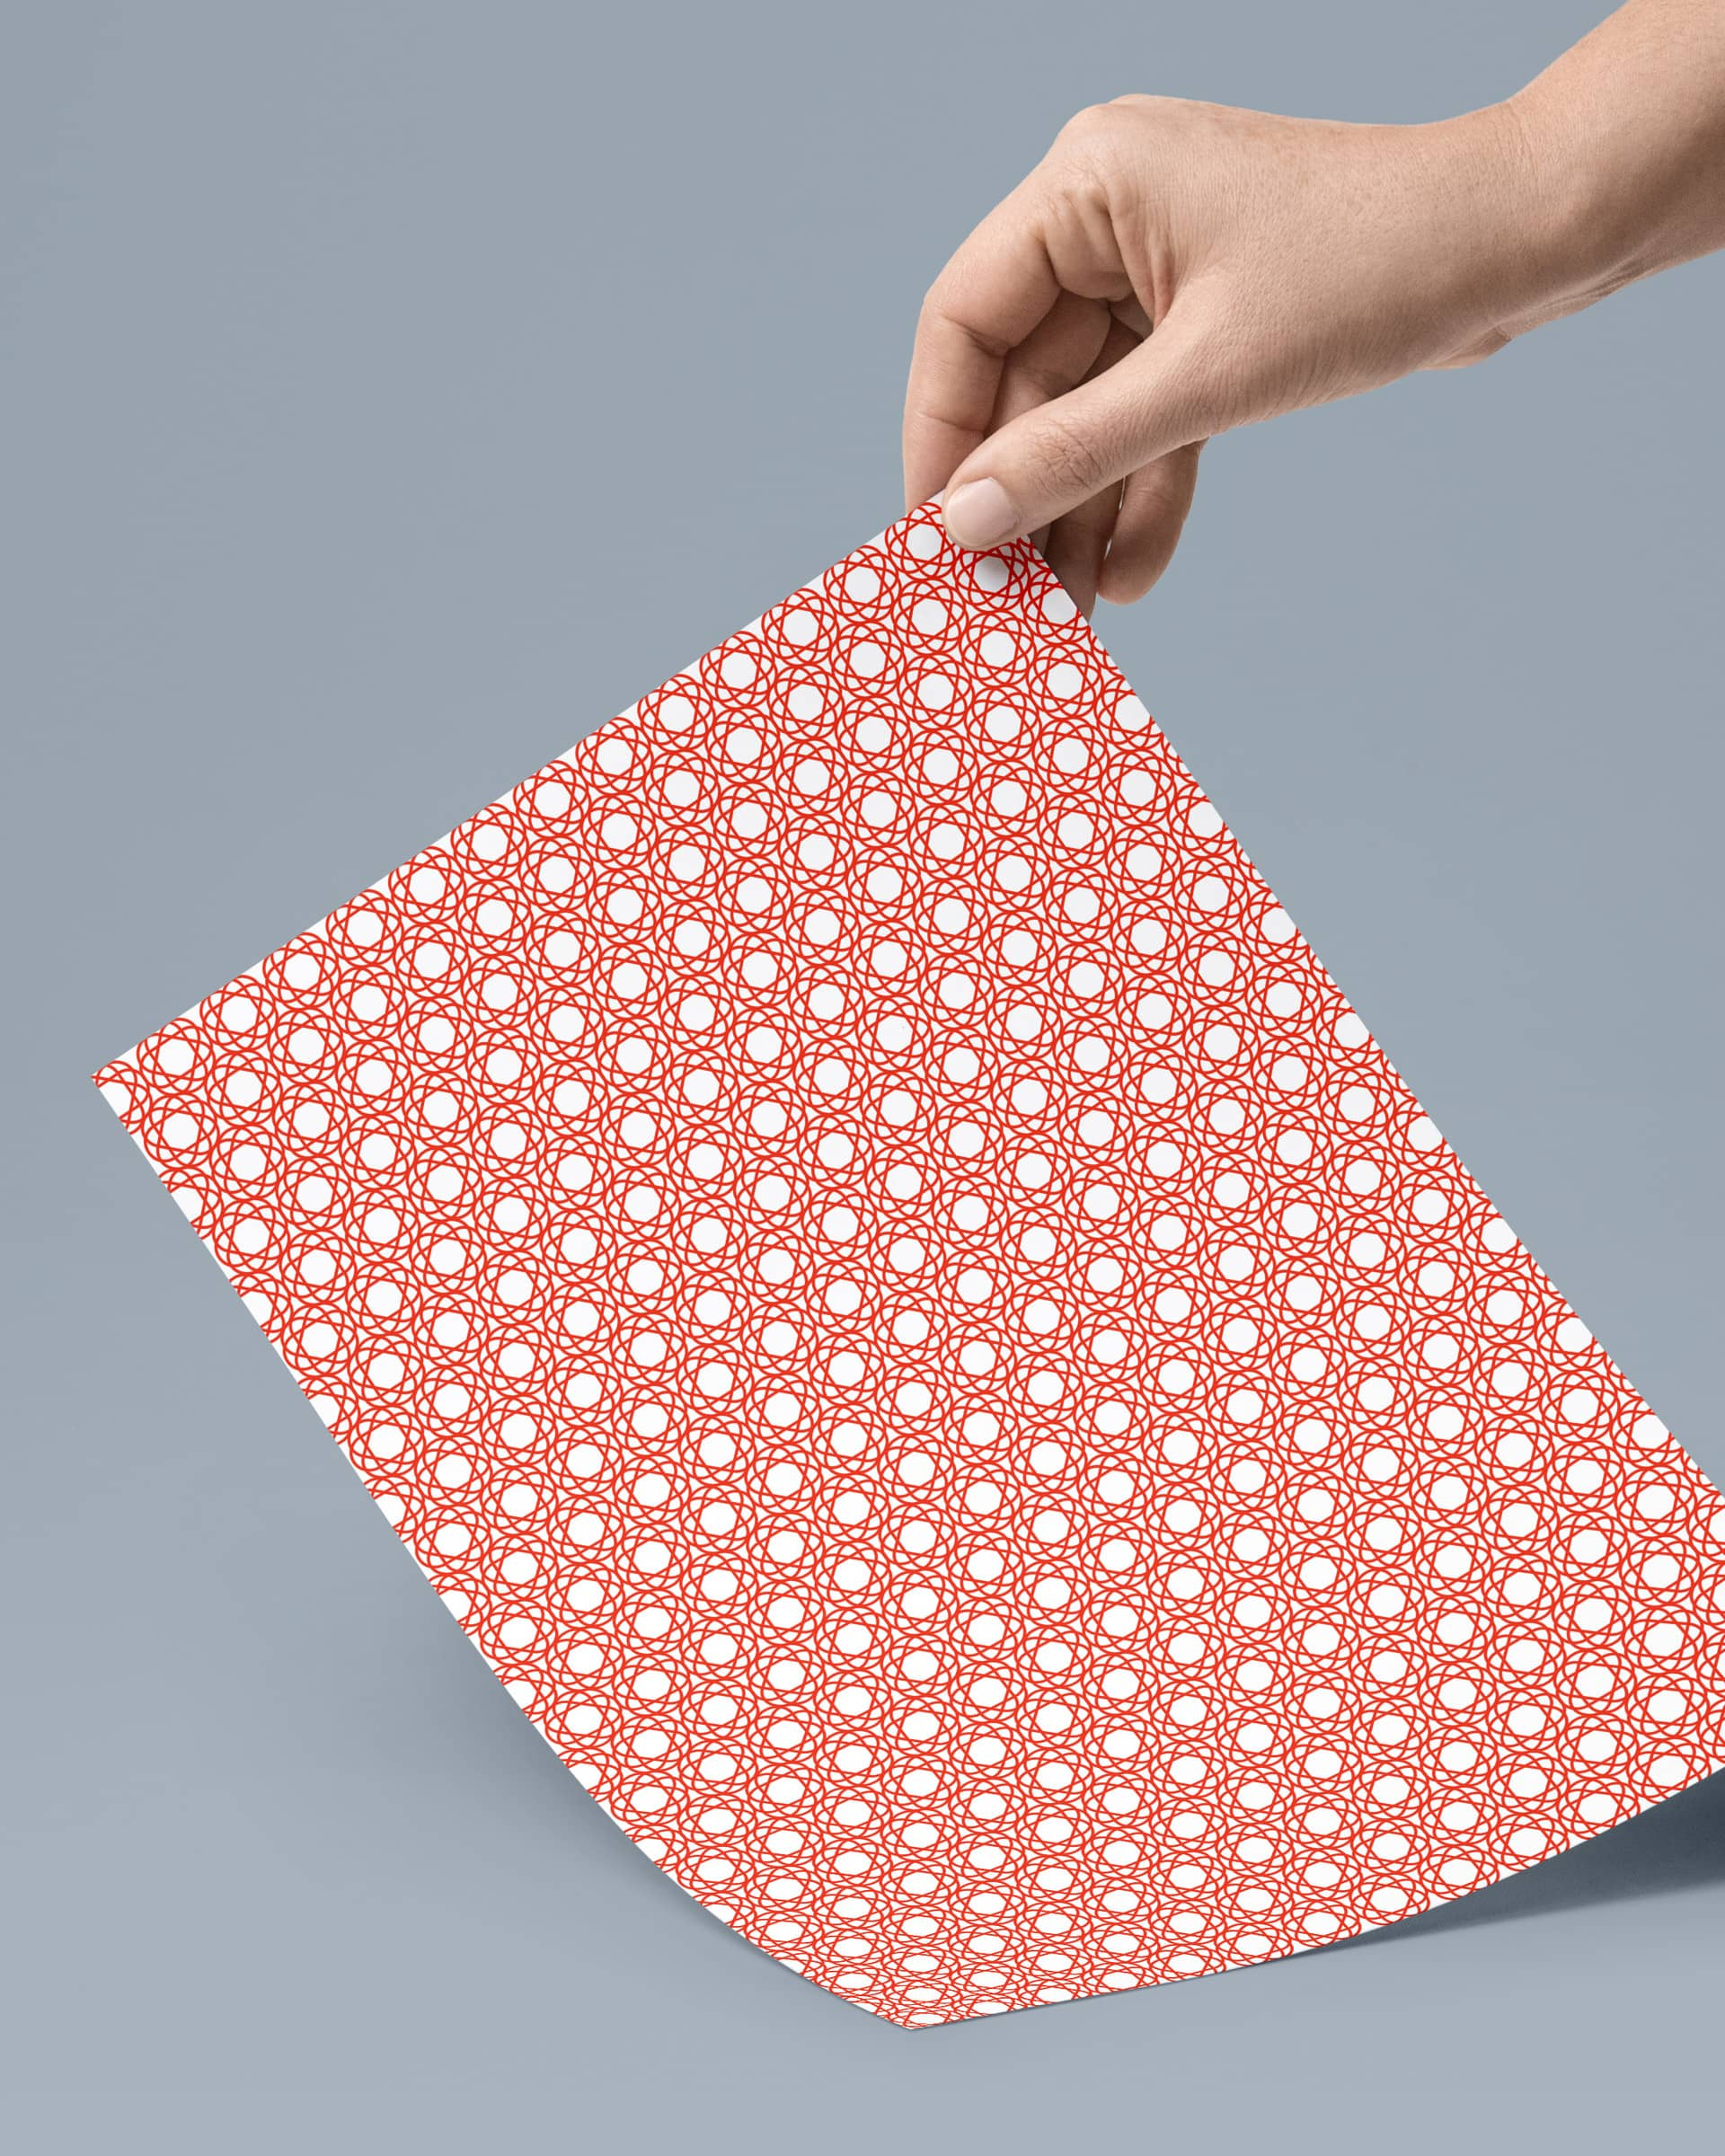 Red geometrical pattern design printed on paper